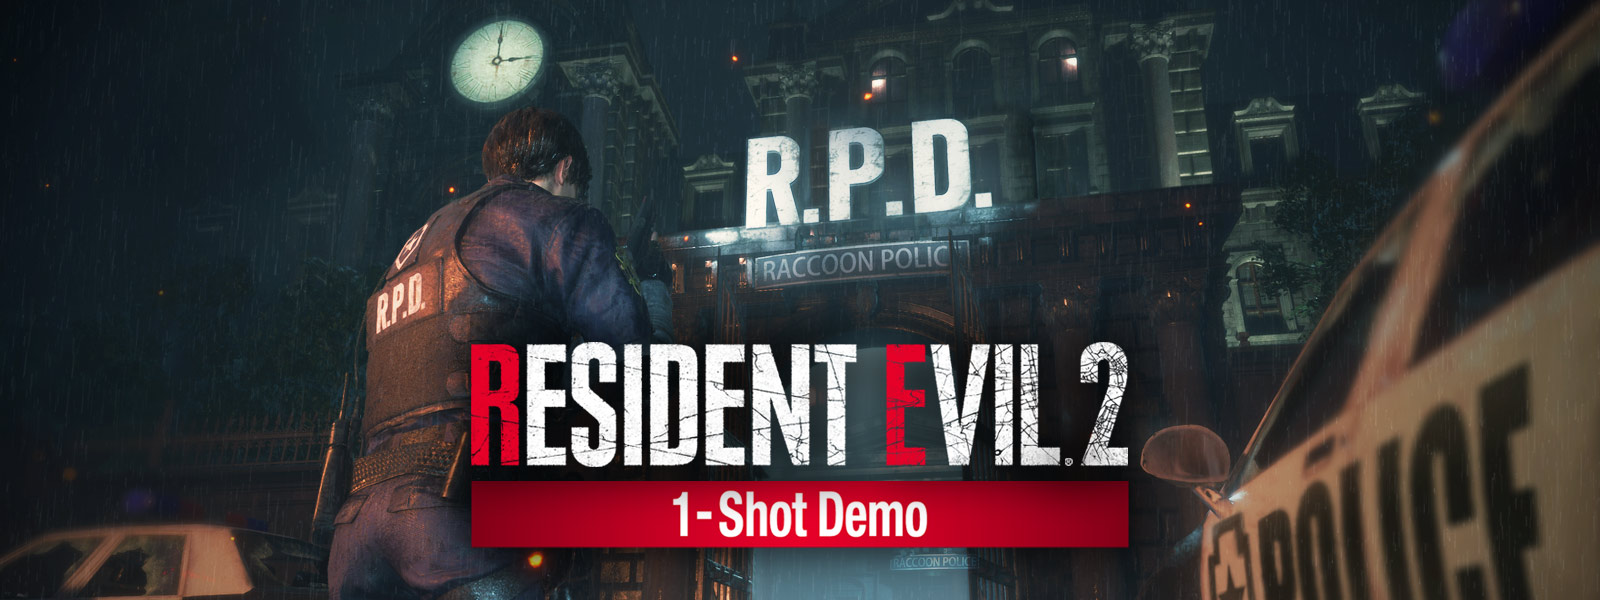 Resident Evil 2 1-shot demo, Leon Kennedy stands at the entrance to the Raccoon City Police Department